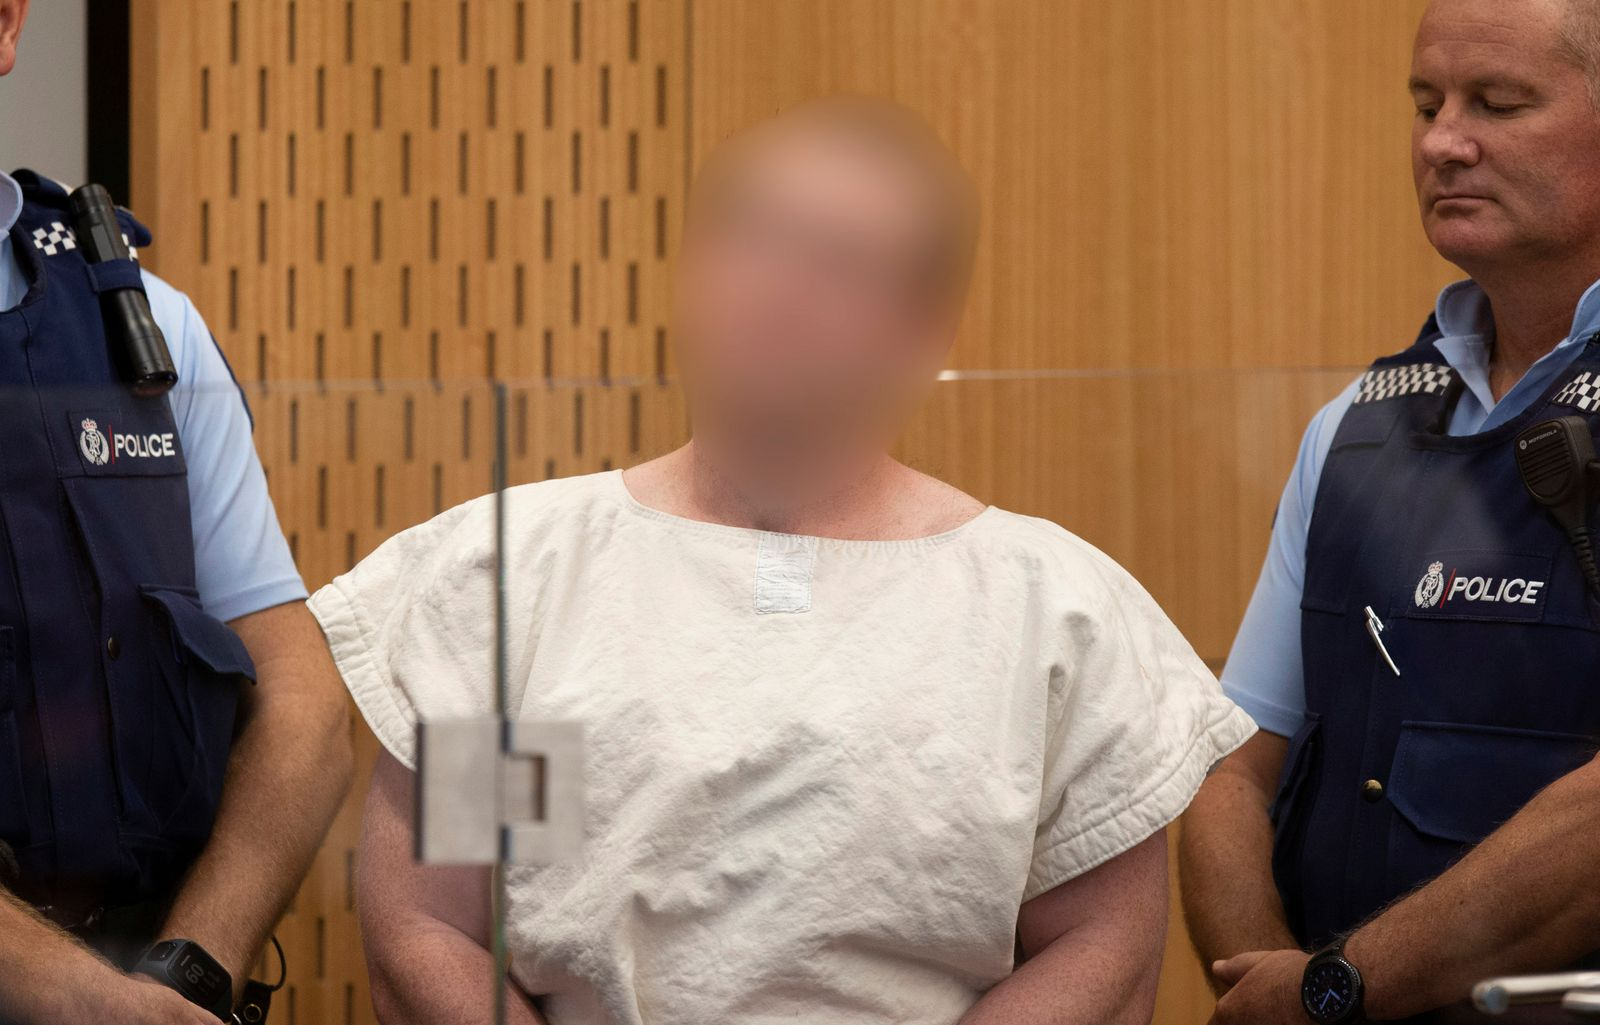 Brenton Tarrant, charged for murder in relation to the mosque attacks, is seen in the dock during his appearance in the Christchurch District Court